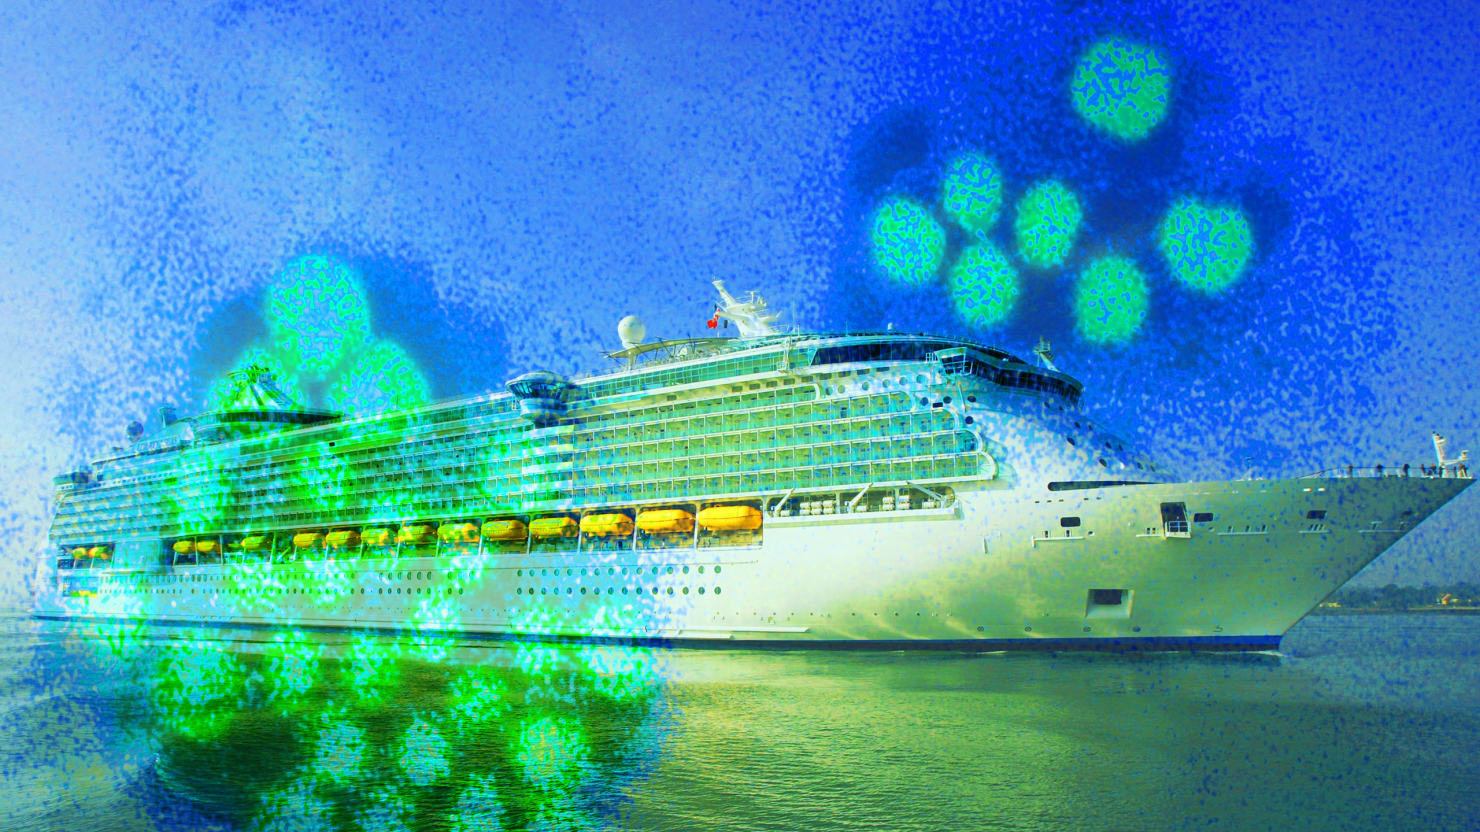 A Doctor Explains Why Cruise Ships Should Be Banned - Cruise ship norovirus